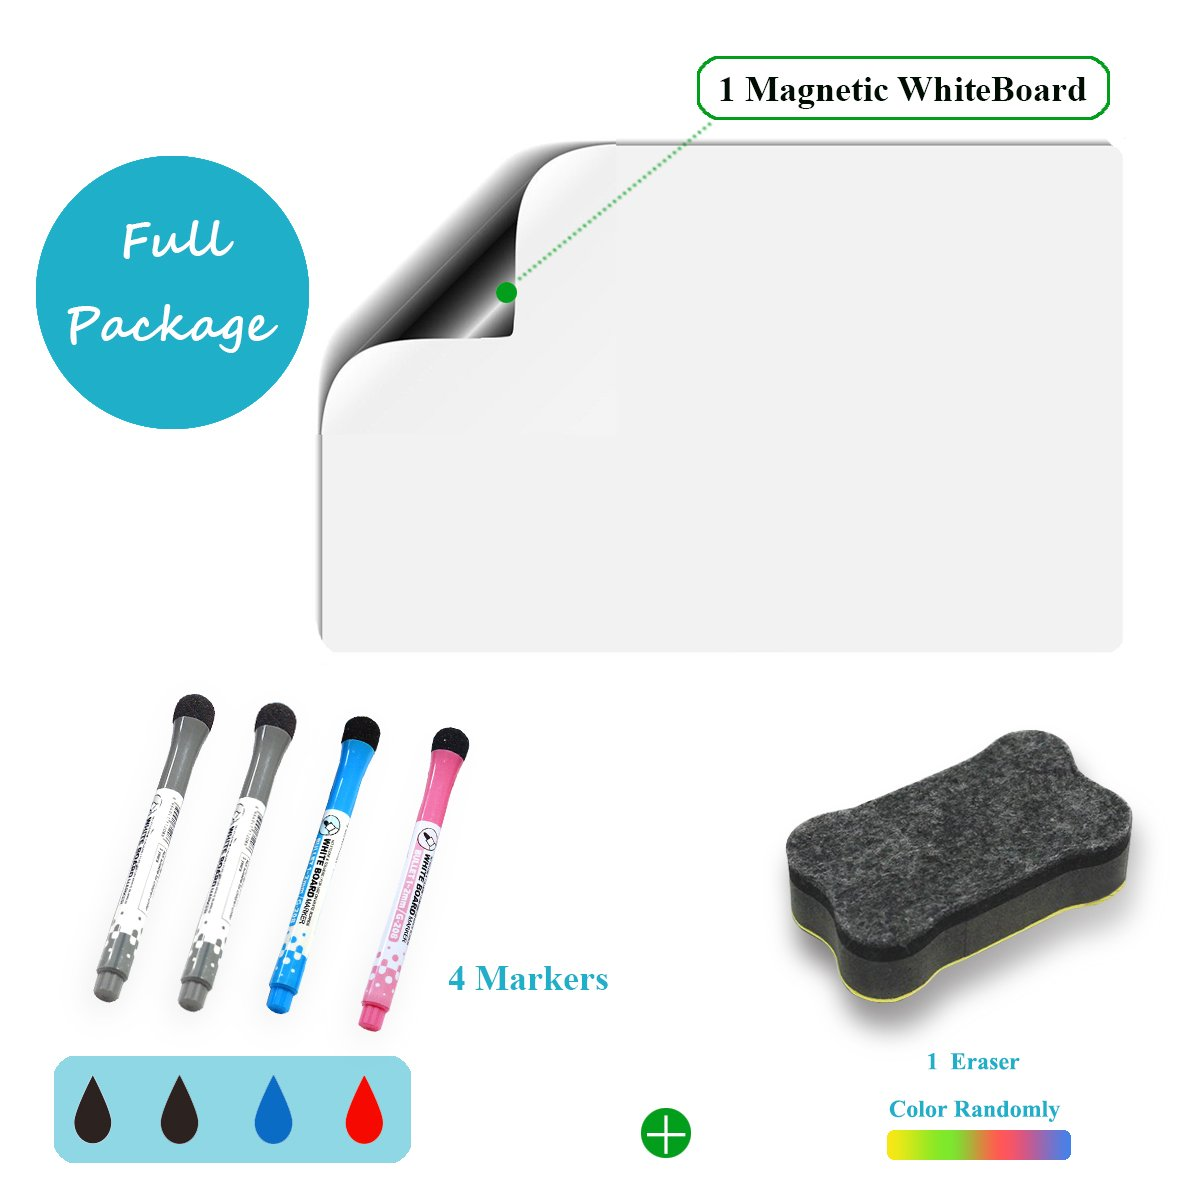 Sooard Magnetic Dry Erase Whiteboard/White Board Sticker for Smart Planners 16.5'' x 11.8'' A3 size & Accessories (Includes 1 Dry Erase Eraser & 4 Marker Pens with Magnets) Suitable for Fridge, Home